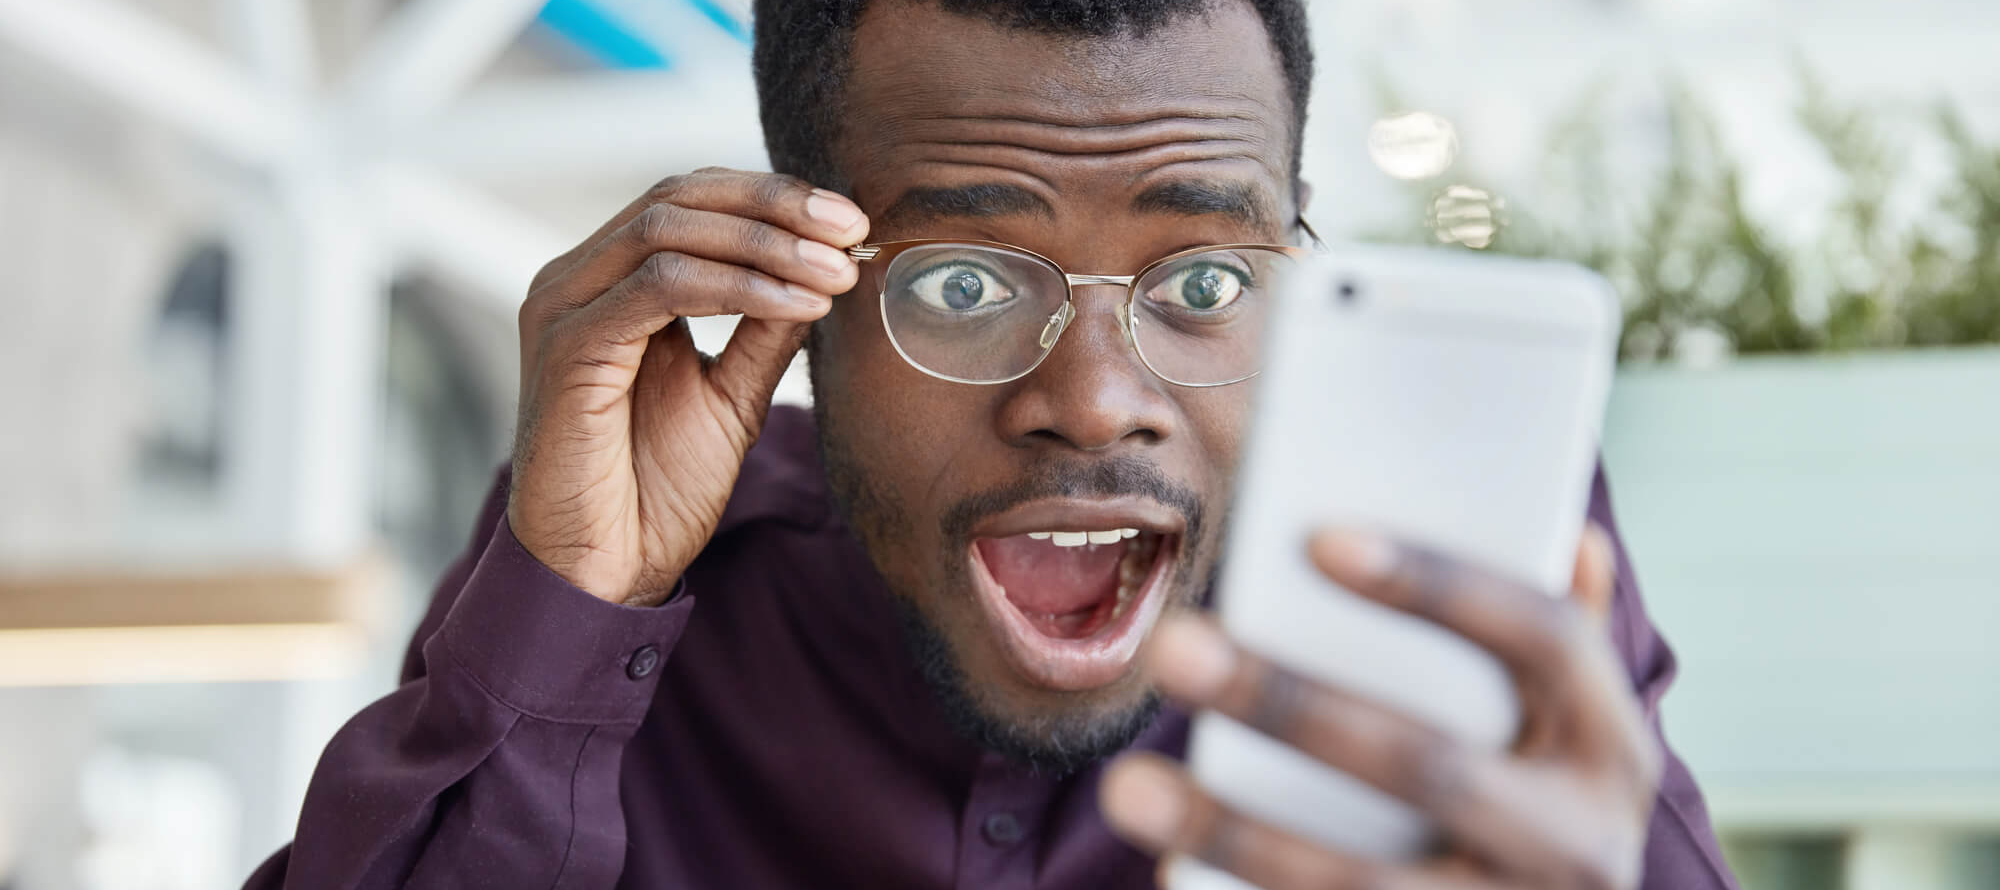 man holding glasses captivated by phone content